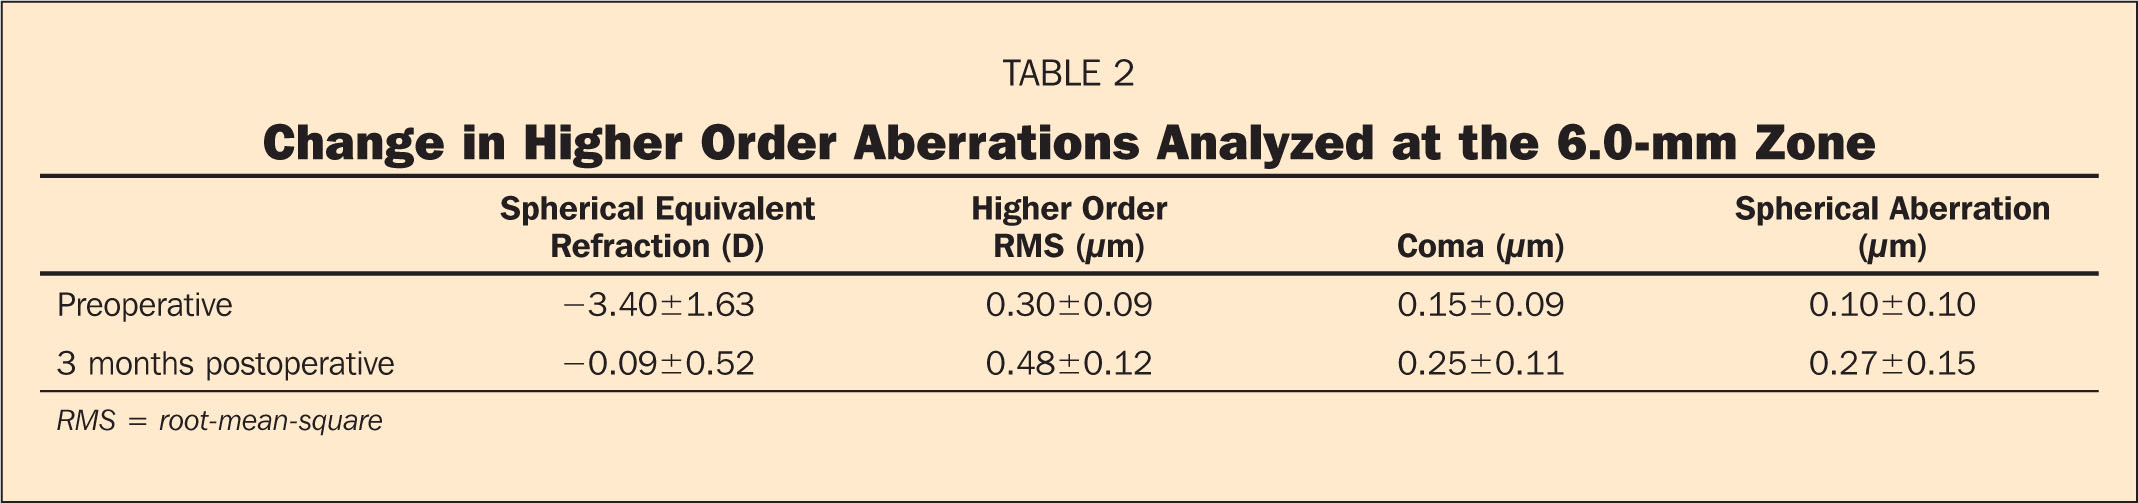 Change in Higher Order Aberrations Analyzed at the 6.0-mm Zone